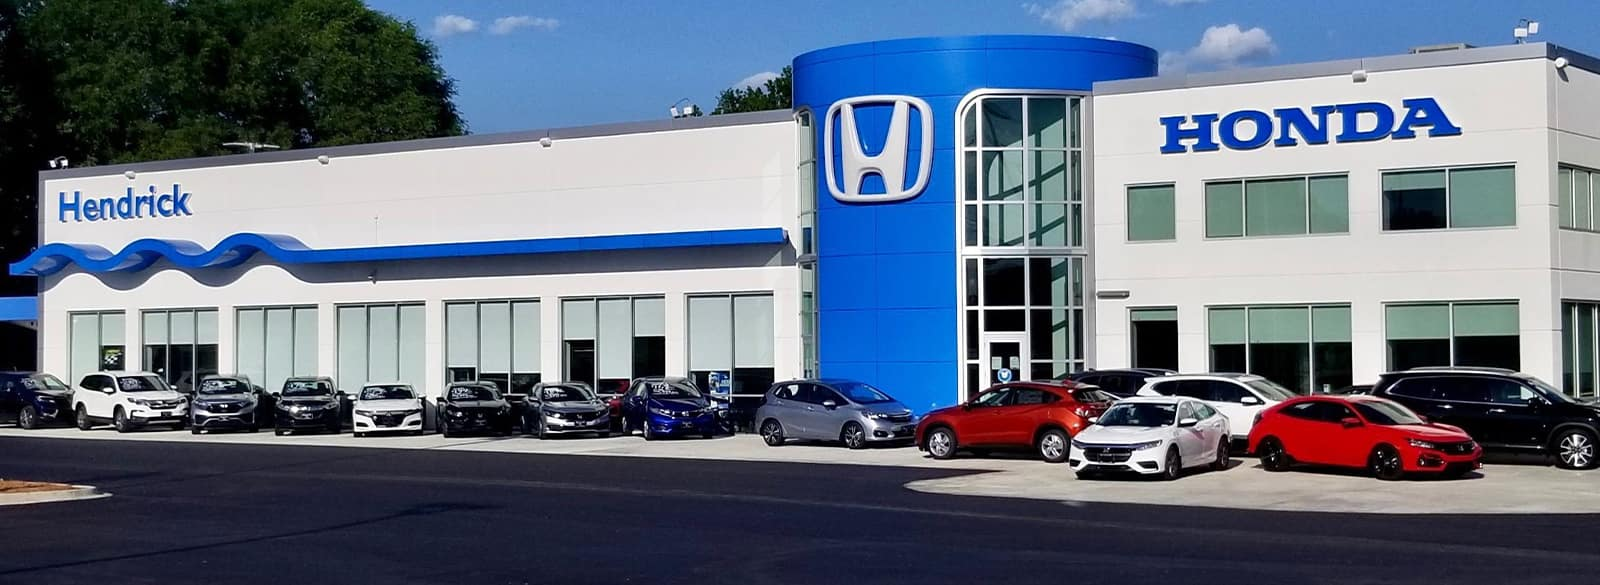 An exterior shot of a Honda dealership in the day.